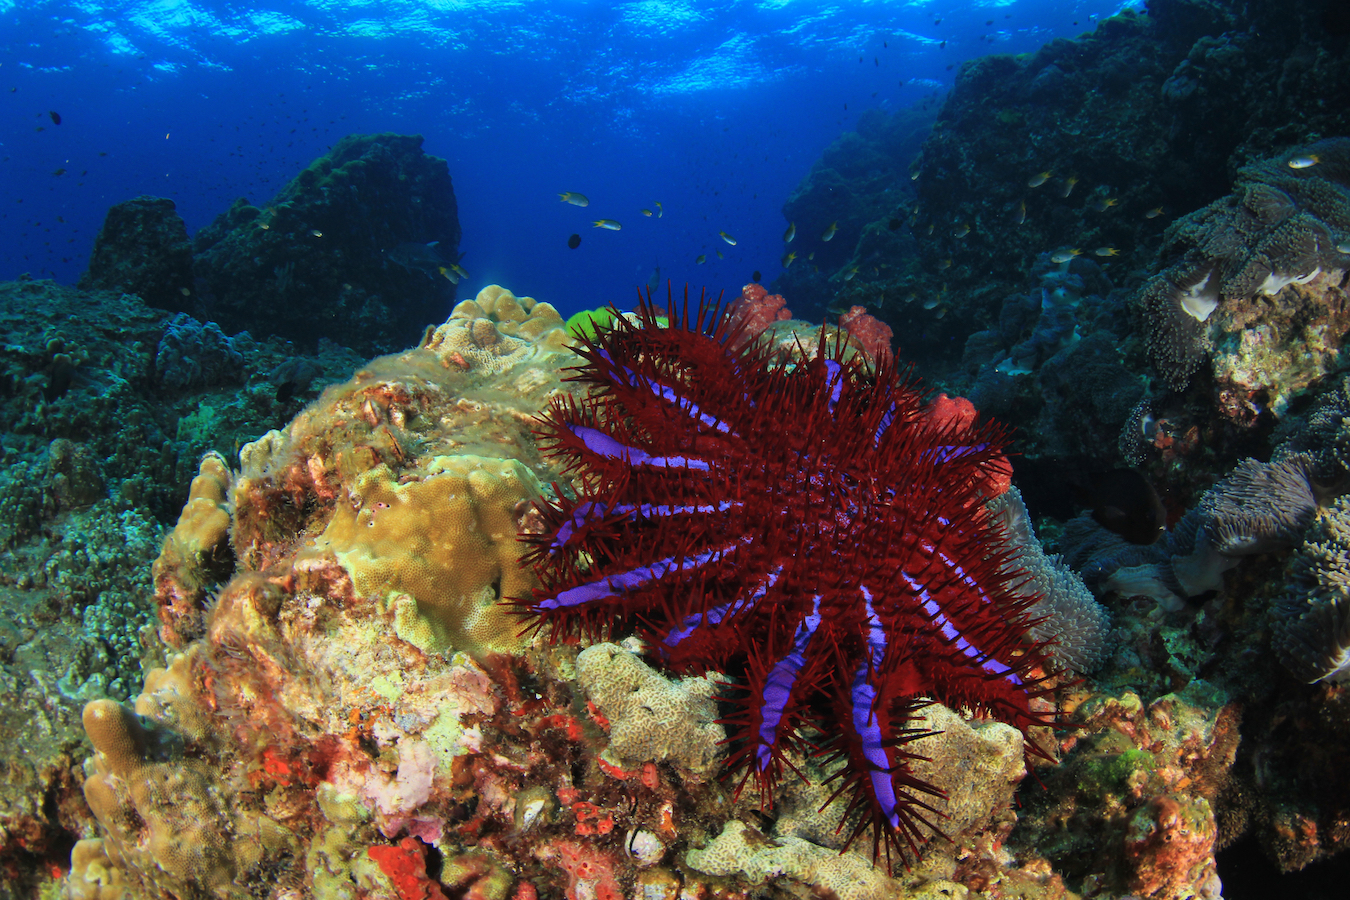 Researchers have collected and published the best scientific research on preventing coral-eating Crown-Of-Thorns Starfish (COTS) outbreaks.